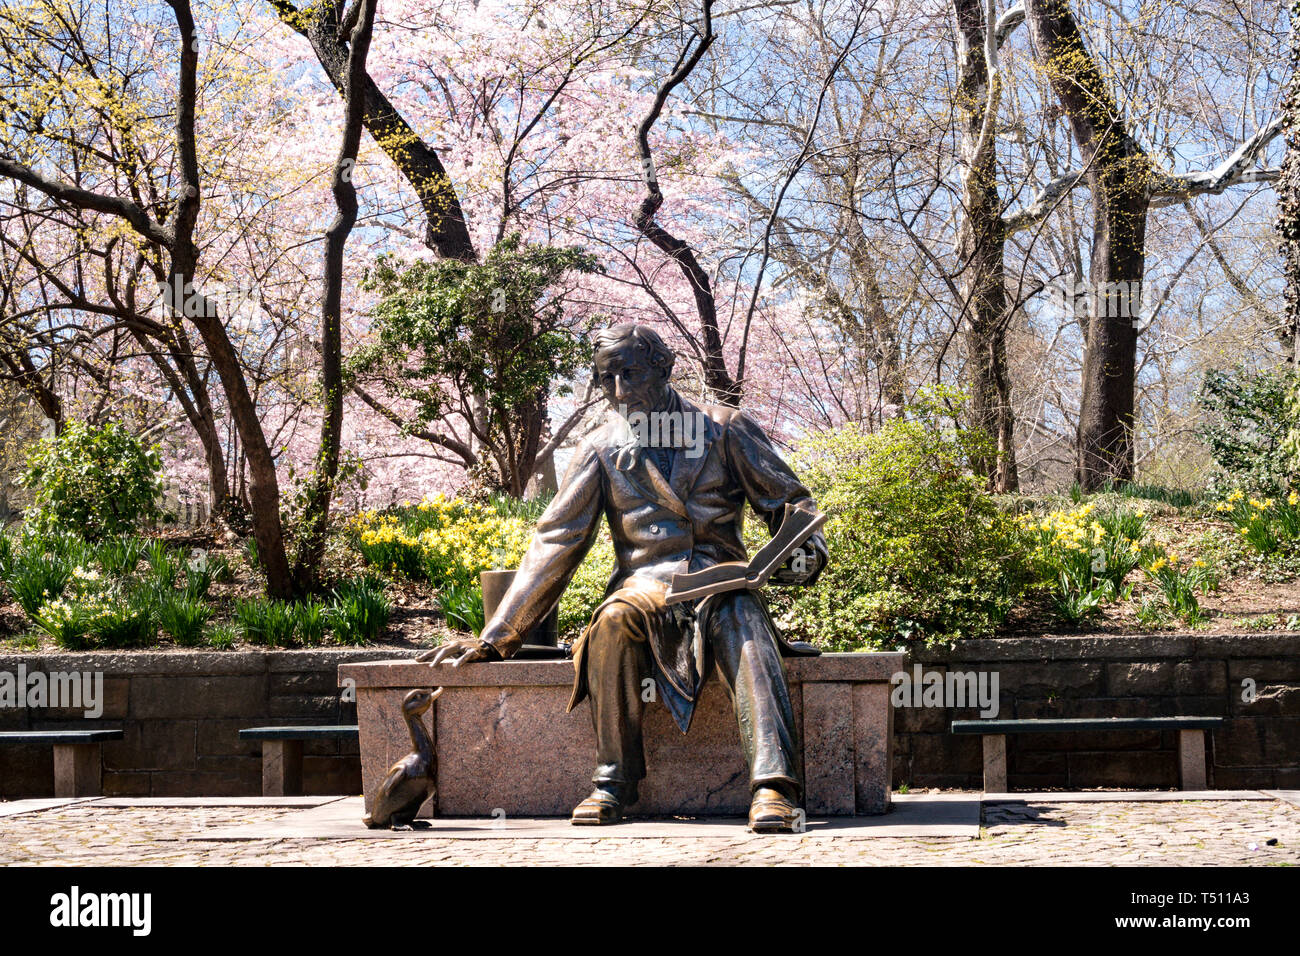 Hans Christian Anderson Statue is in Central Park, New York City, USA - Stock Image